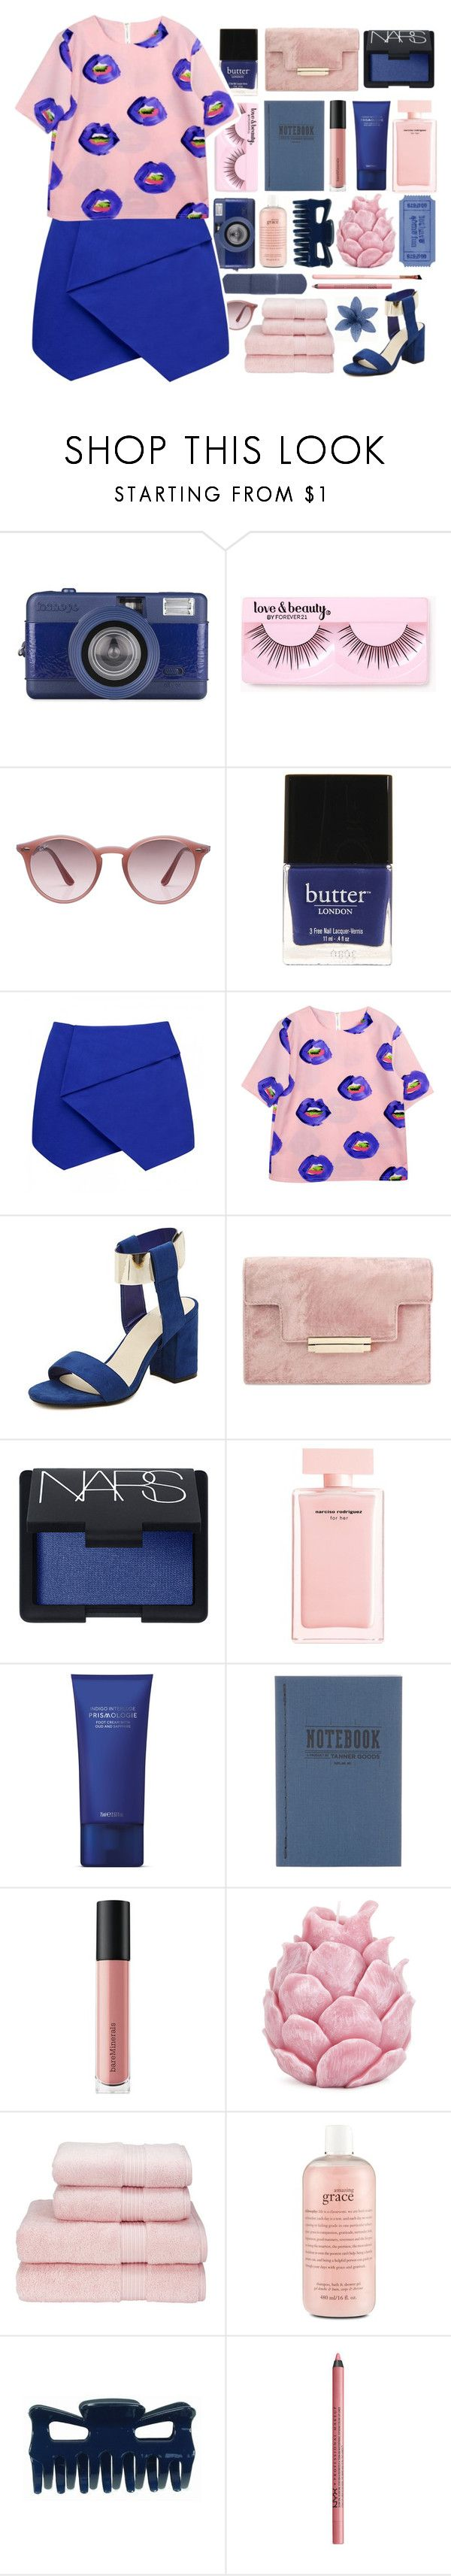 """Alicia"" by vansousa ❤ liked on Polyvore featuring Forever 21, Ray-Ban, Butter London, Forever New, NARS Cosmetics, Narciso Rodriguez, Space NK, Tanner Goods, Bare Escentuals and Zara Home"